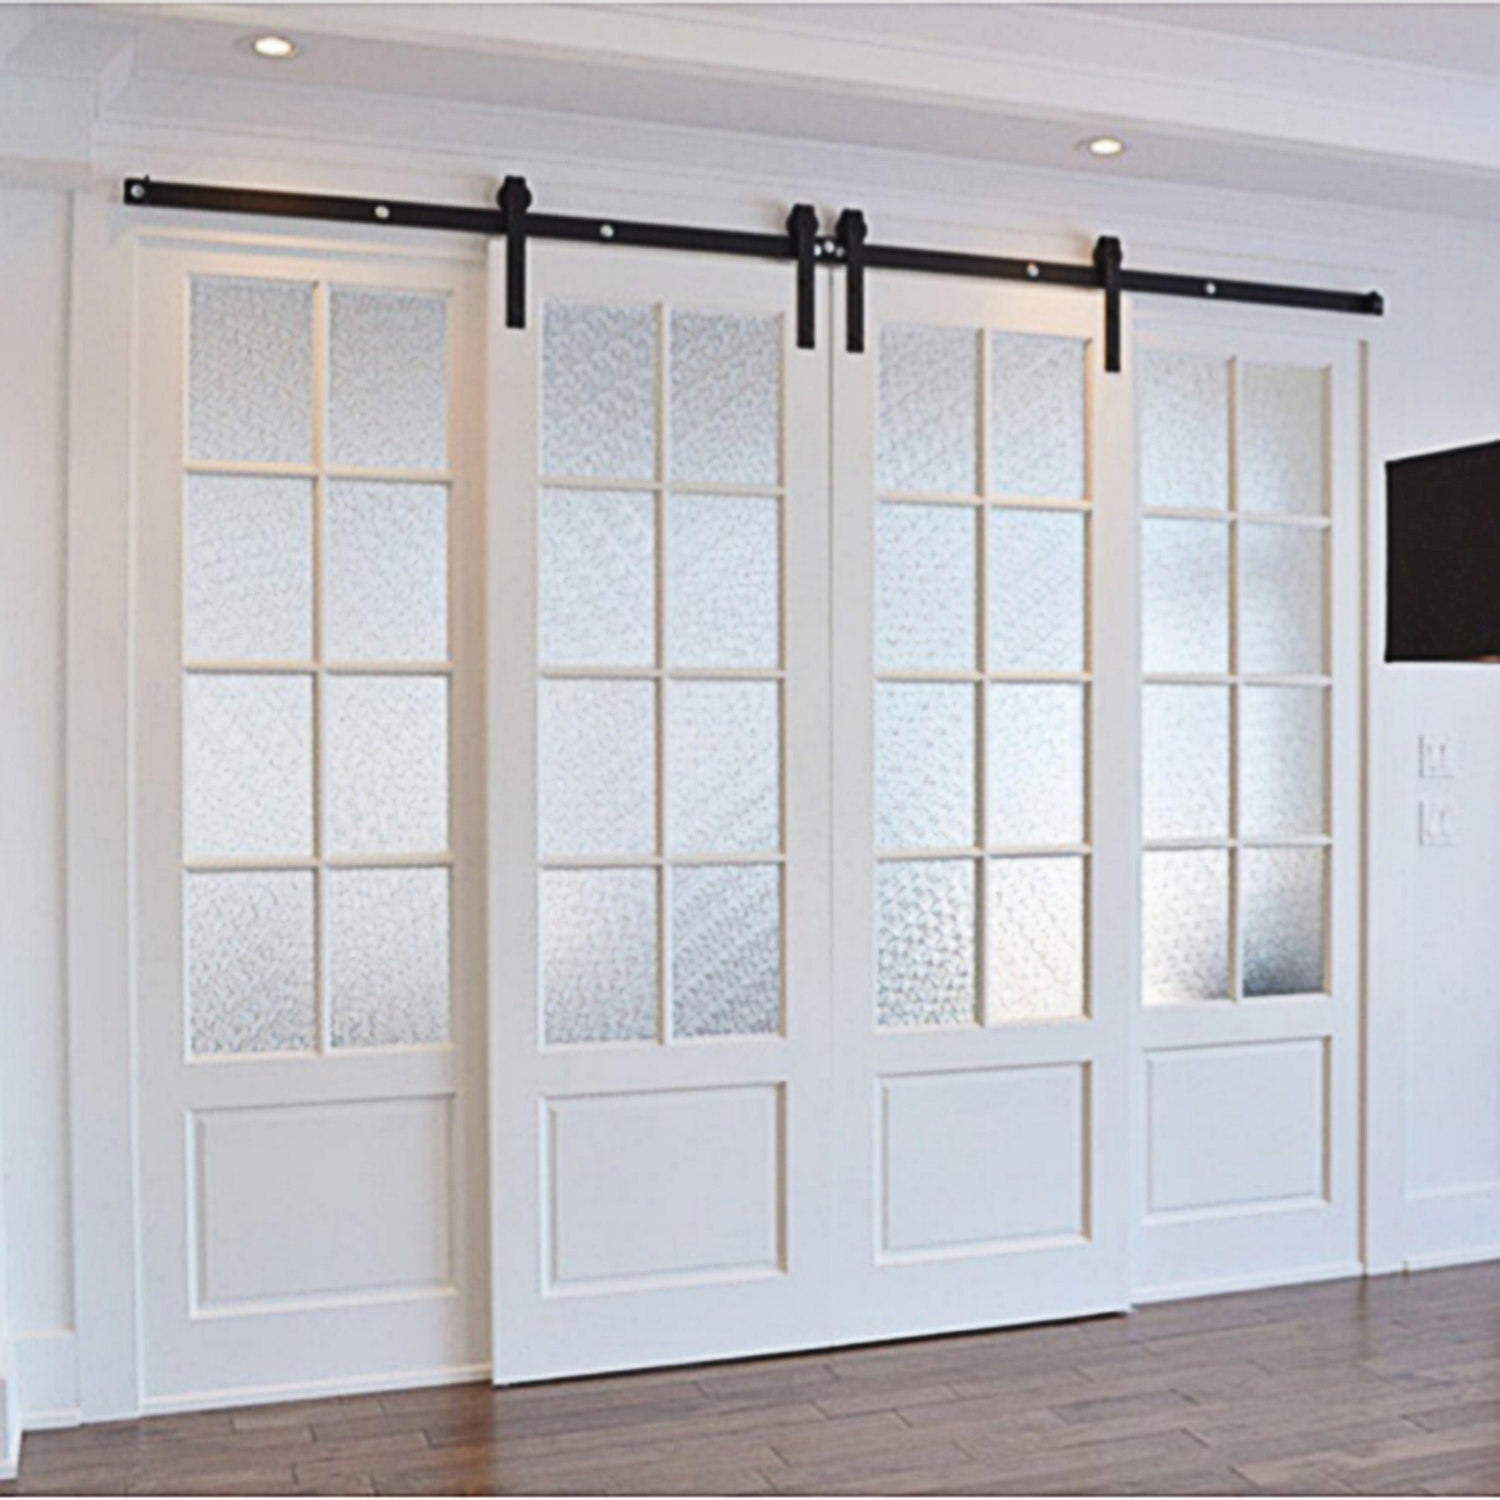 Jet Is A Shopping Site Dedicated To Saving You More Money Everyday Low Prices Are Just French Doors Interior Sliding Doors Interior Sliding Barn Door Hardware